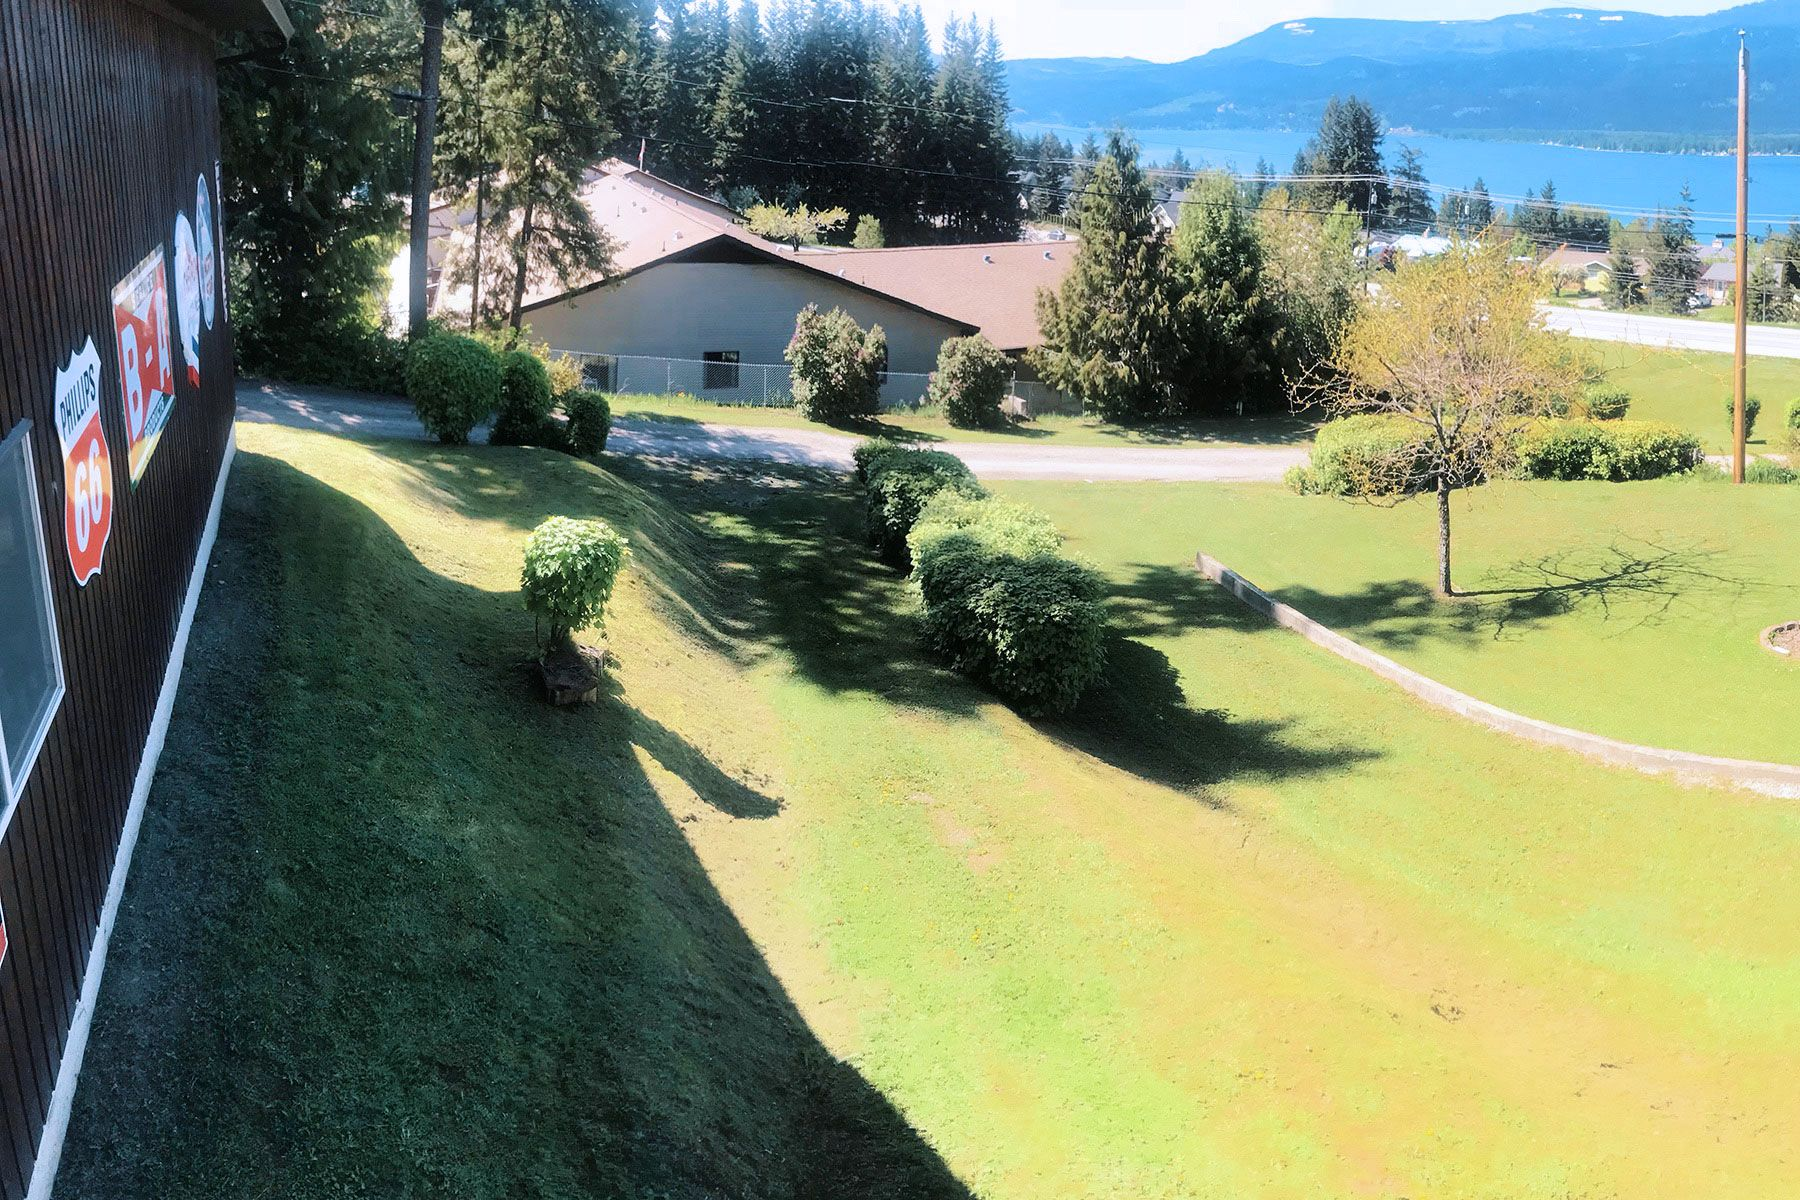 Photo 4: Photos: 1350 Trans Canada Highway in Sorrento: House for sale : MLS®# 10225818